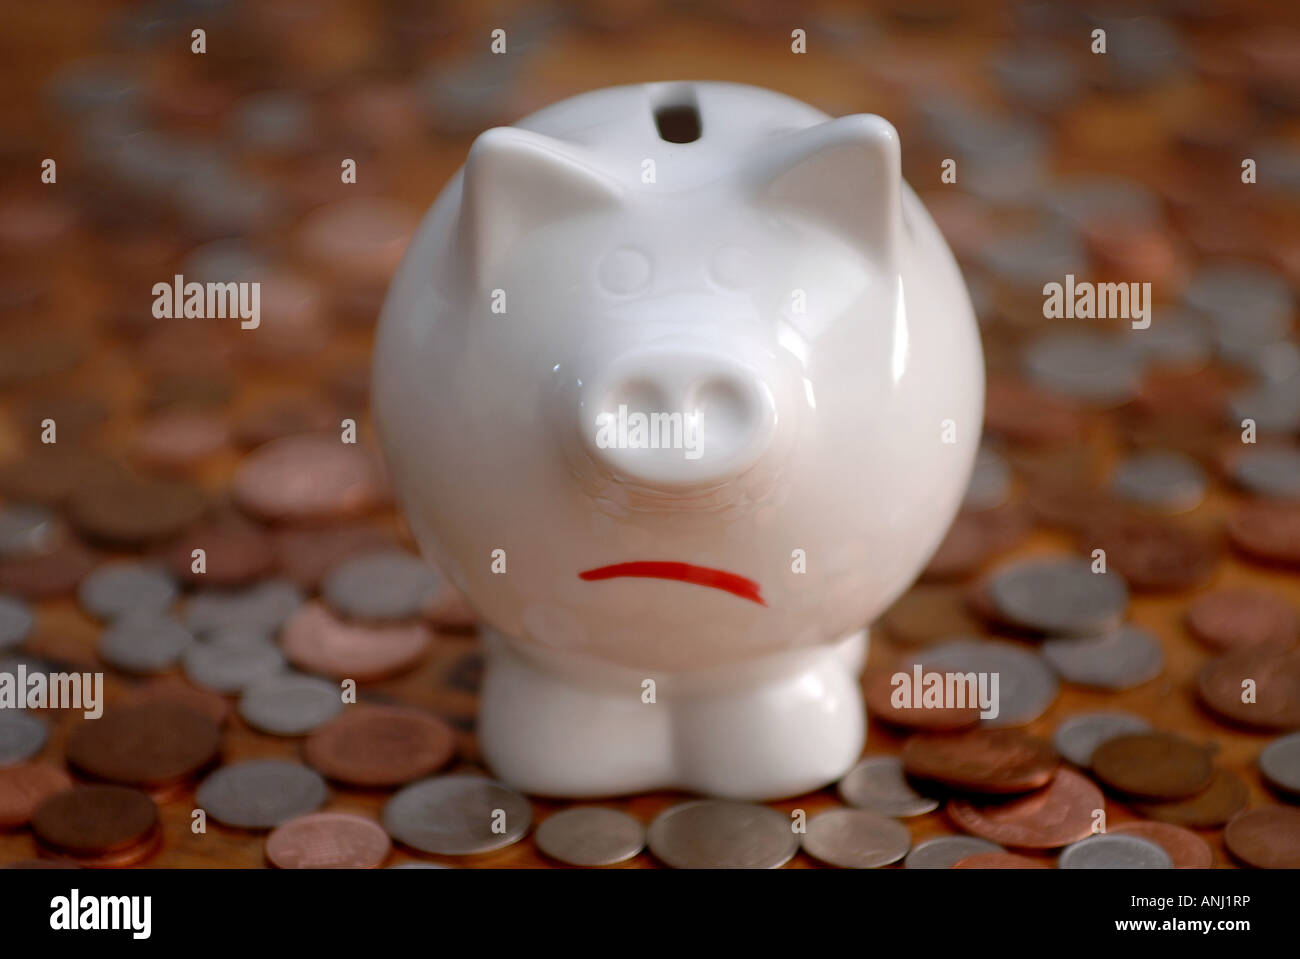 An unhappy piggy bank standing on coins to illustrate savings and debt. - Stock Image